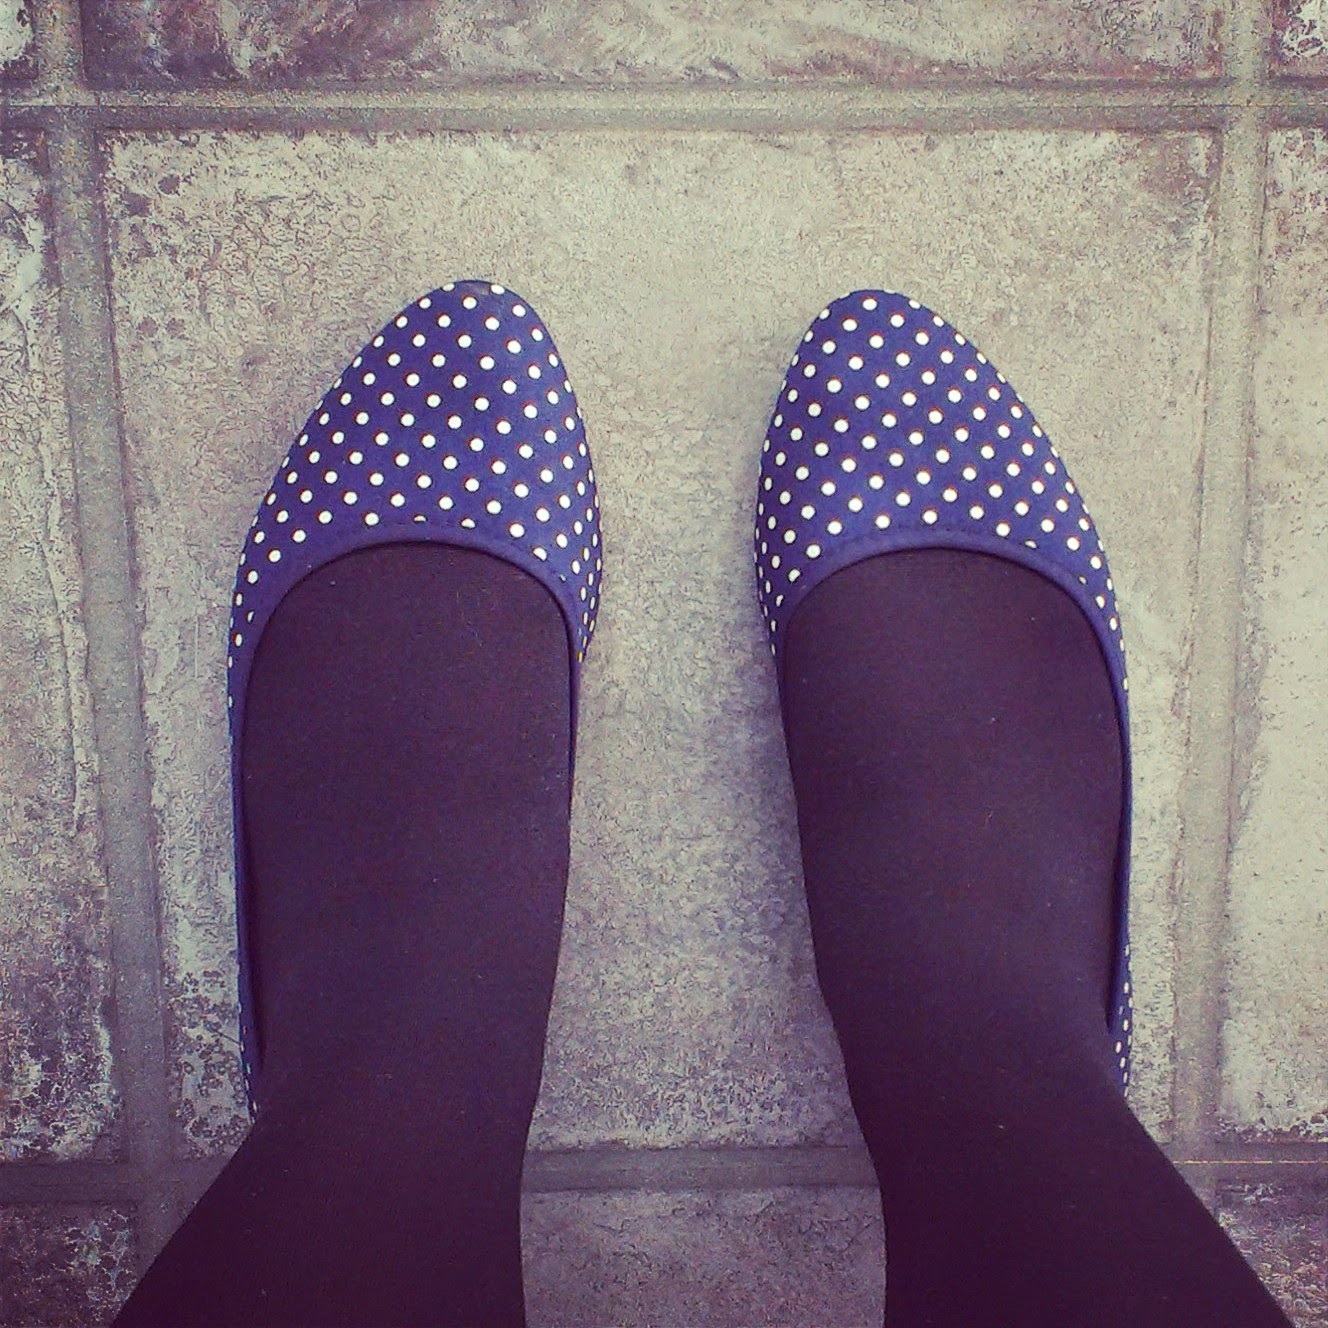 Polka dot ballet shoes